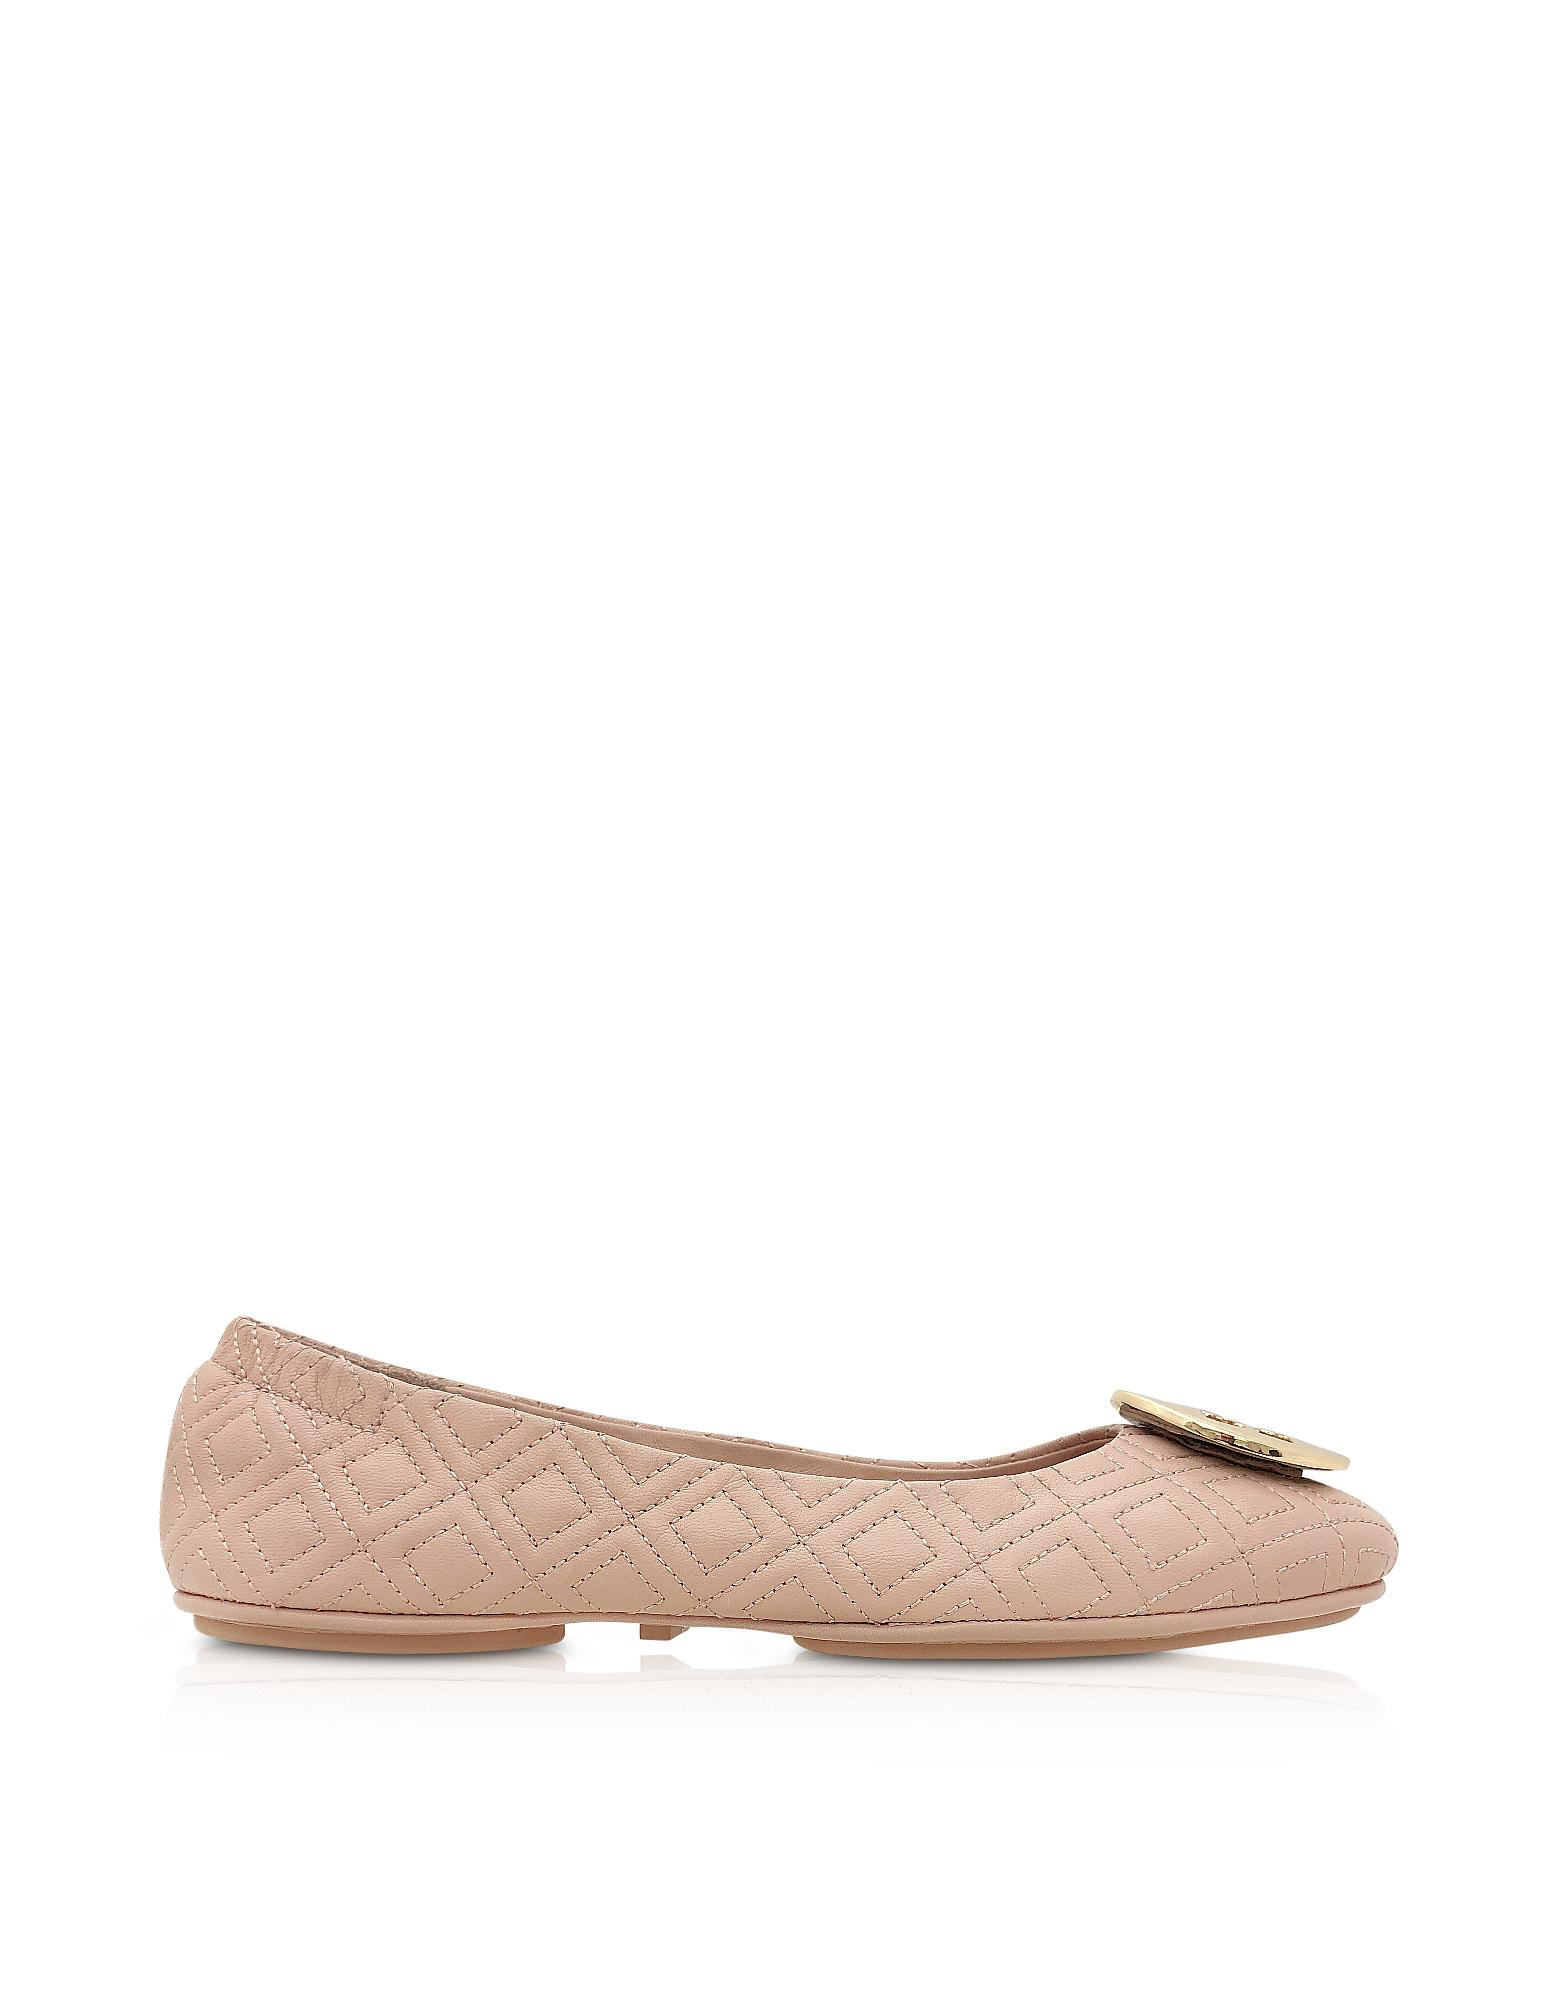 a1b9defc5 Lyst - Tory Burch Goan Sand Quilted Nappa Leather Minnie Ballerinas ...